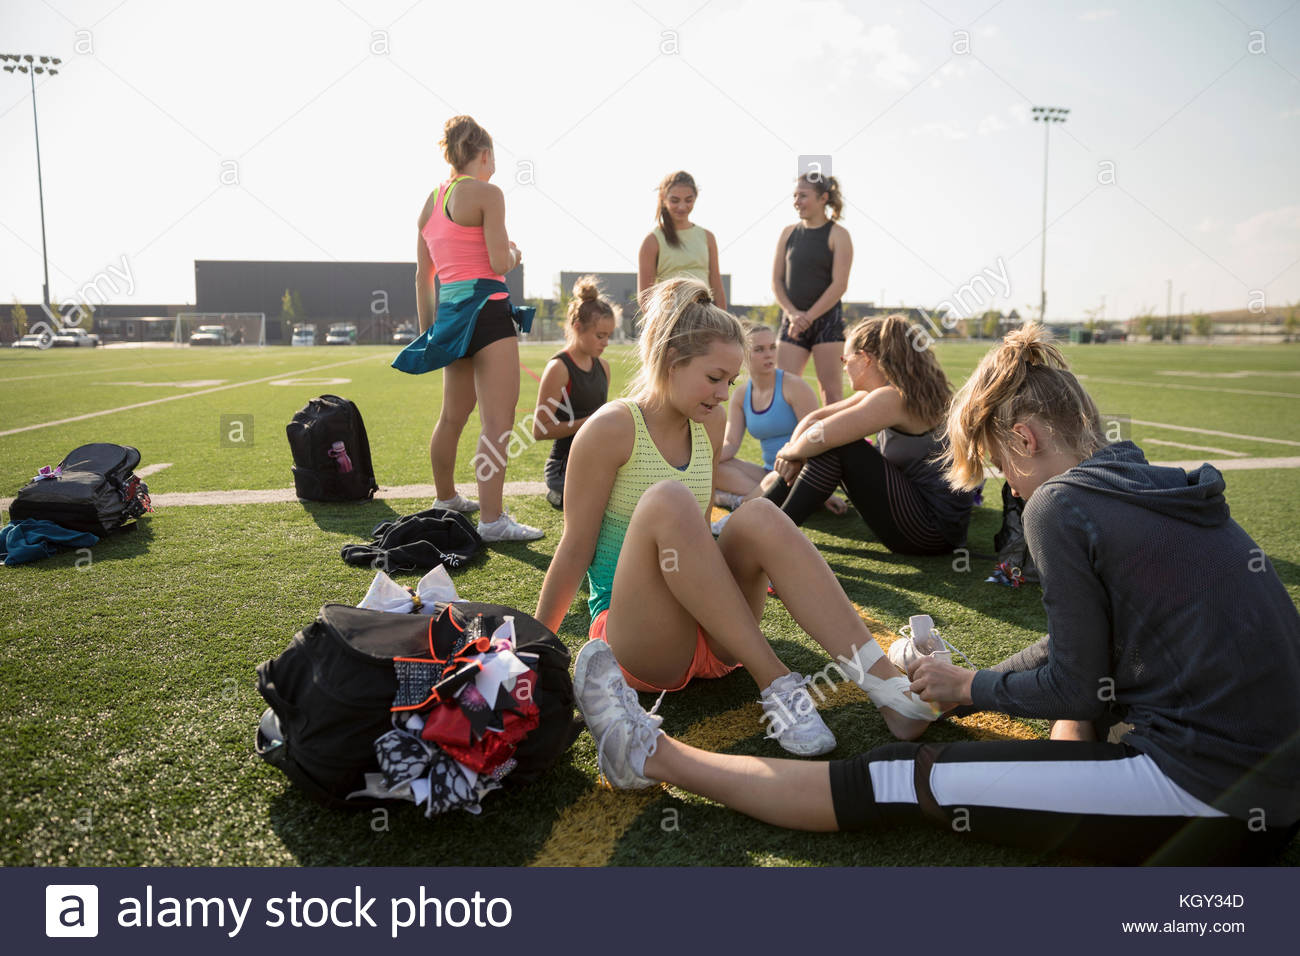 Teenage girl high school cheerleading team taping foot and ankle with tape on sunny football field - Stock Image